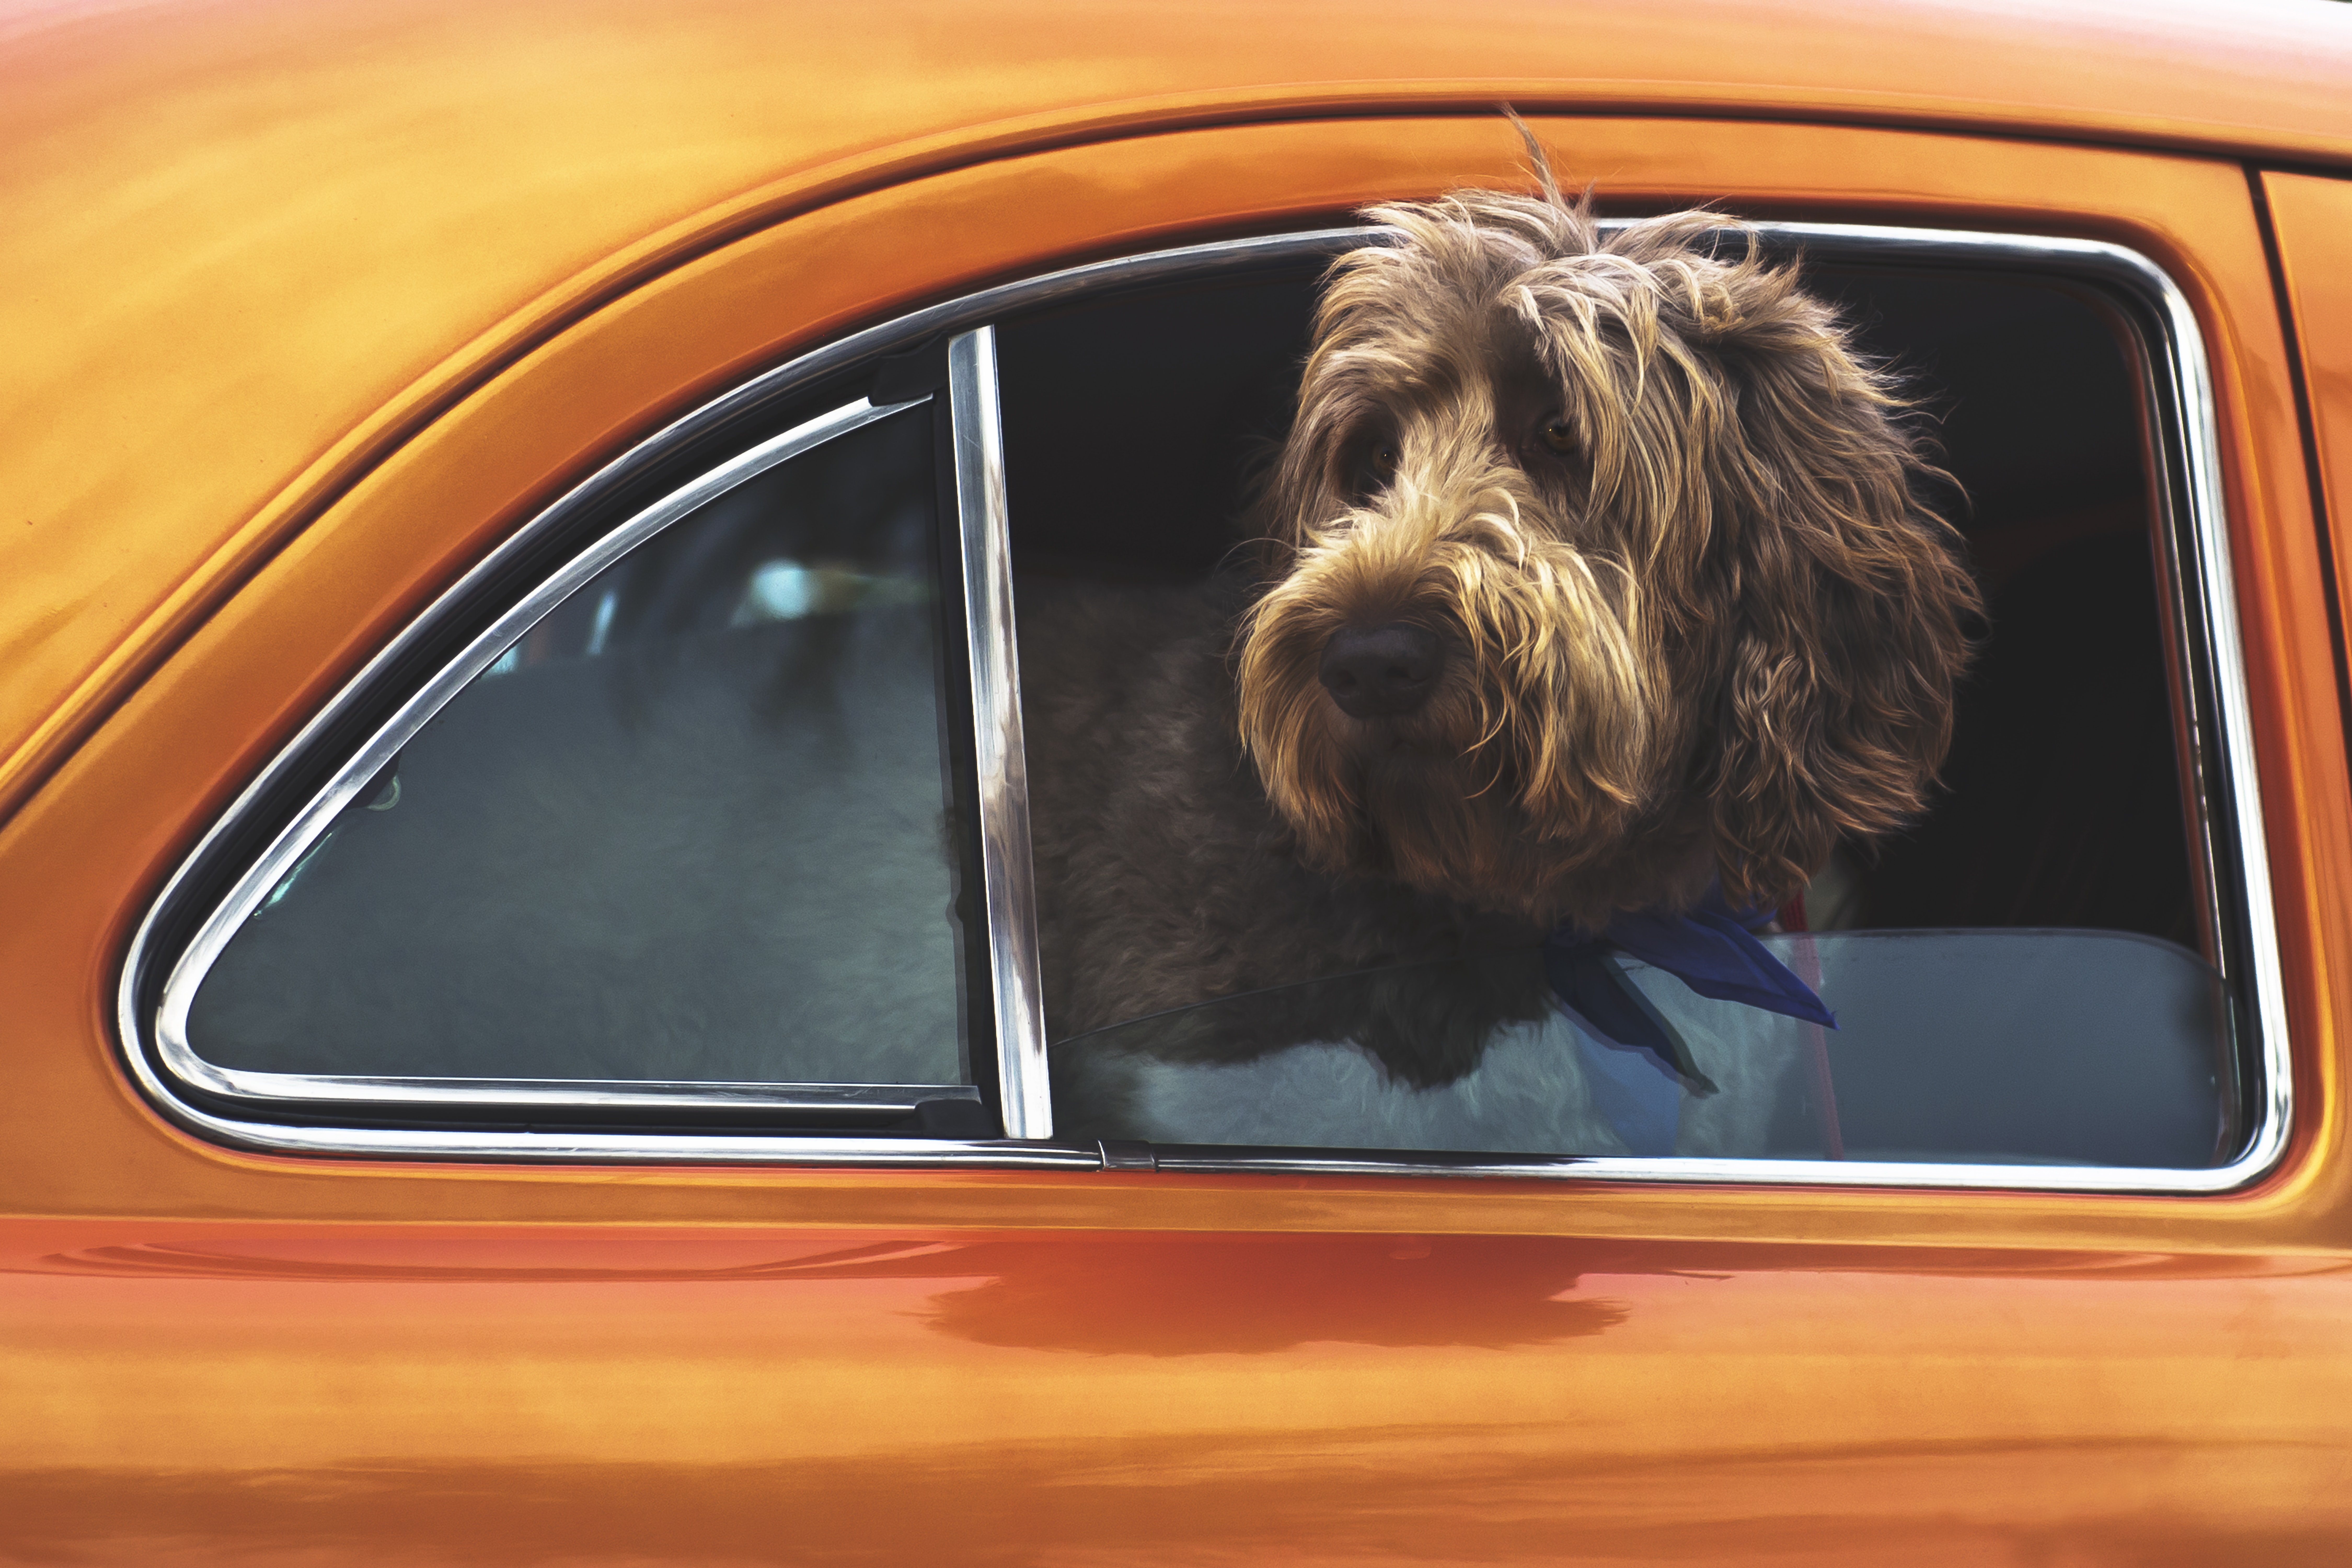 long-coated brown dog staring on vehicle window